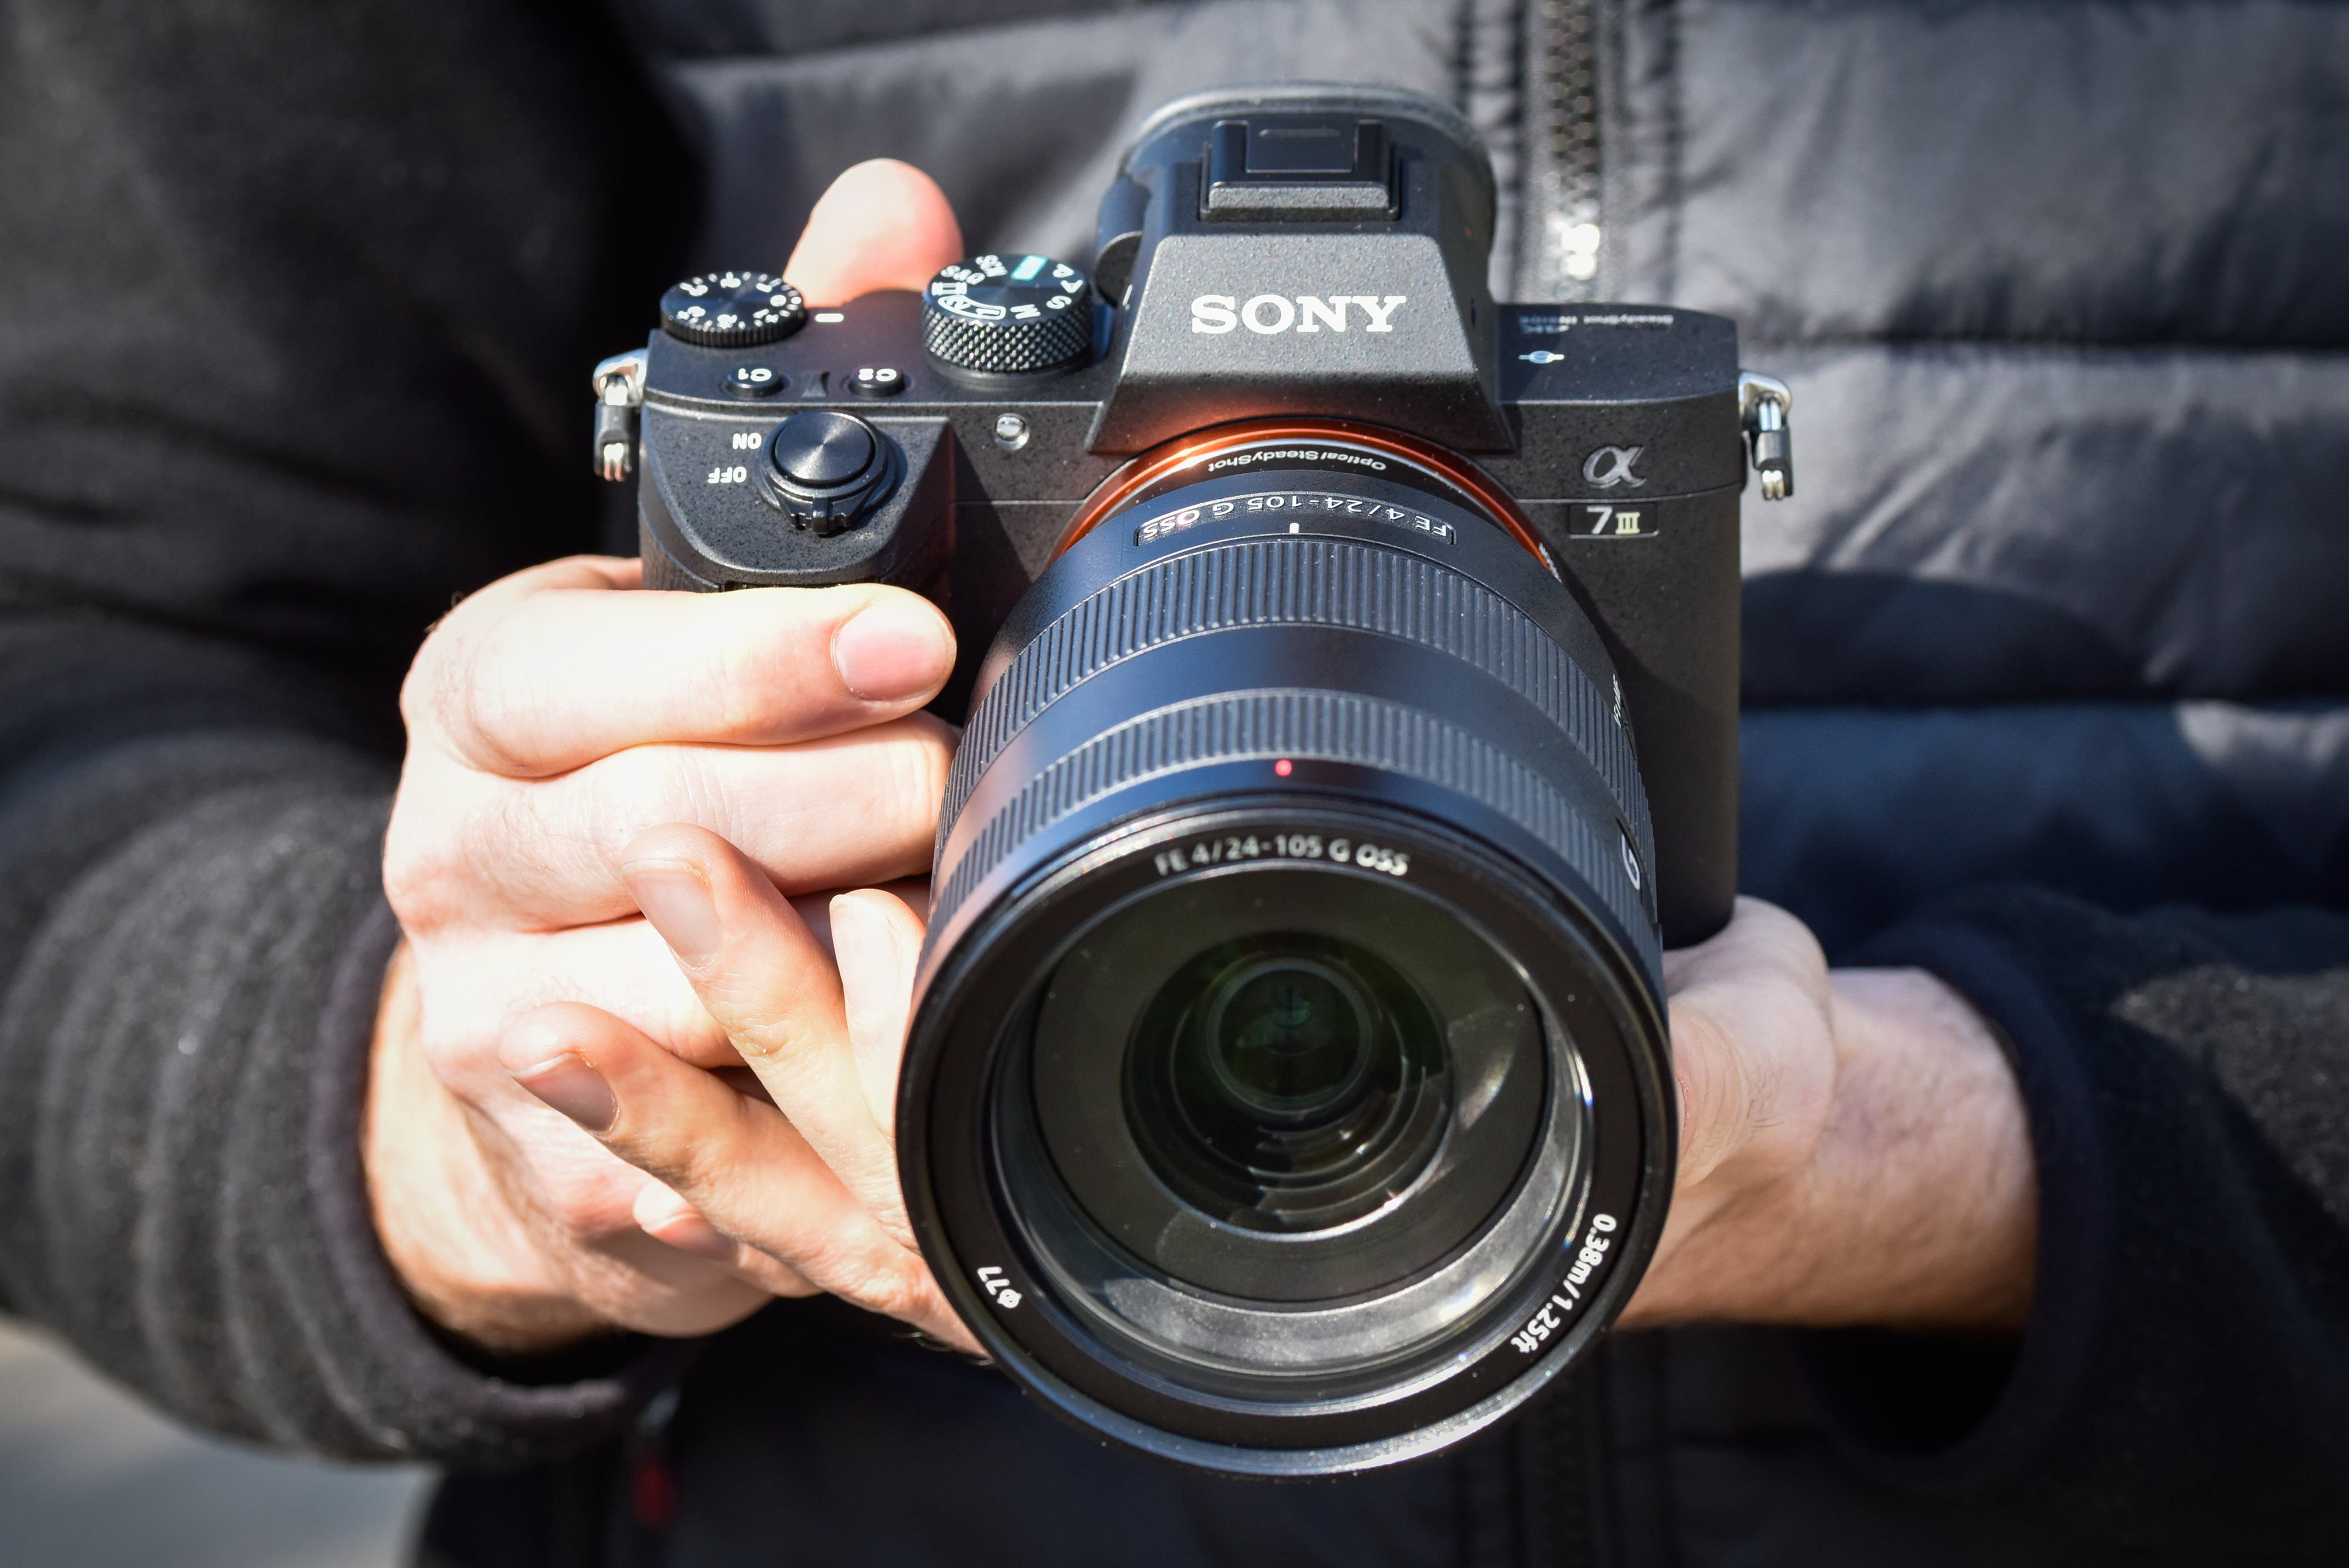 Camera of the Year 2018: Sony A7 III shoots to full-frame mirrorless glory